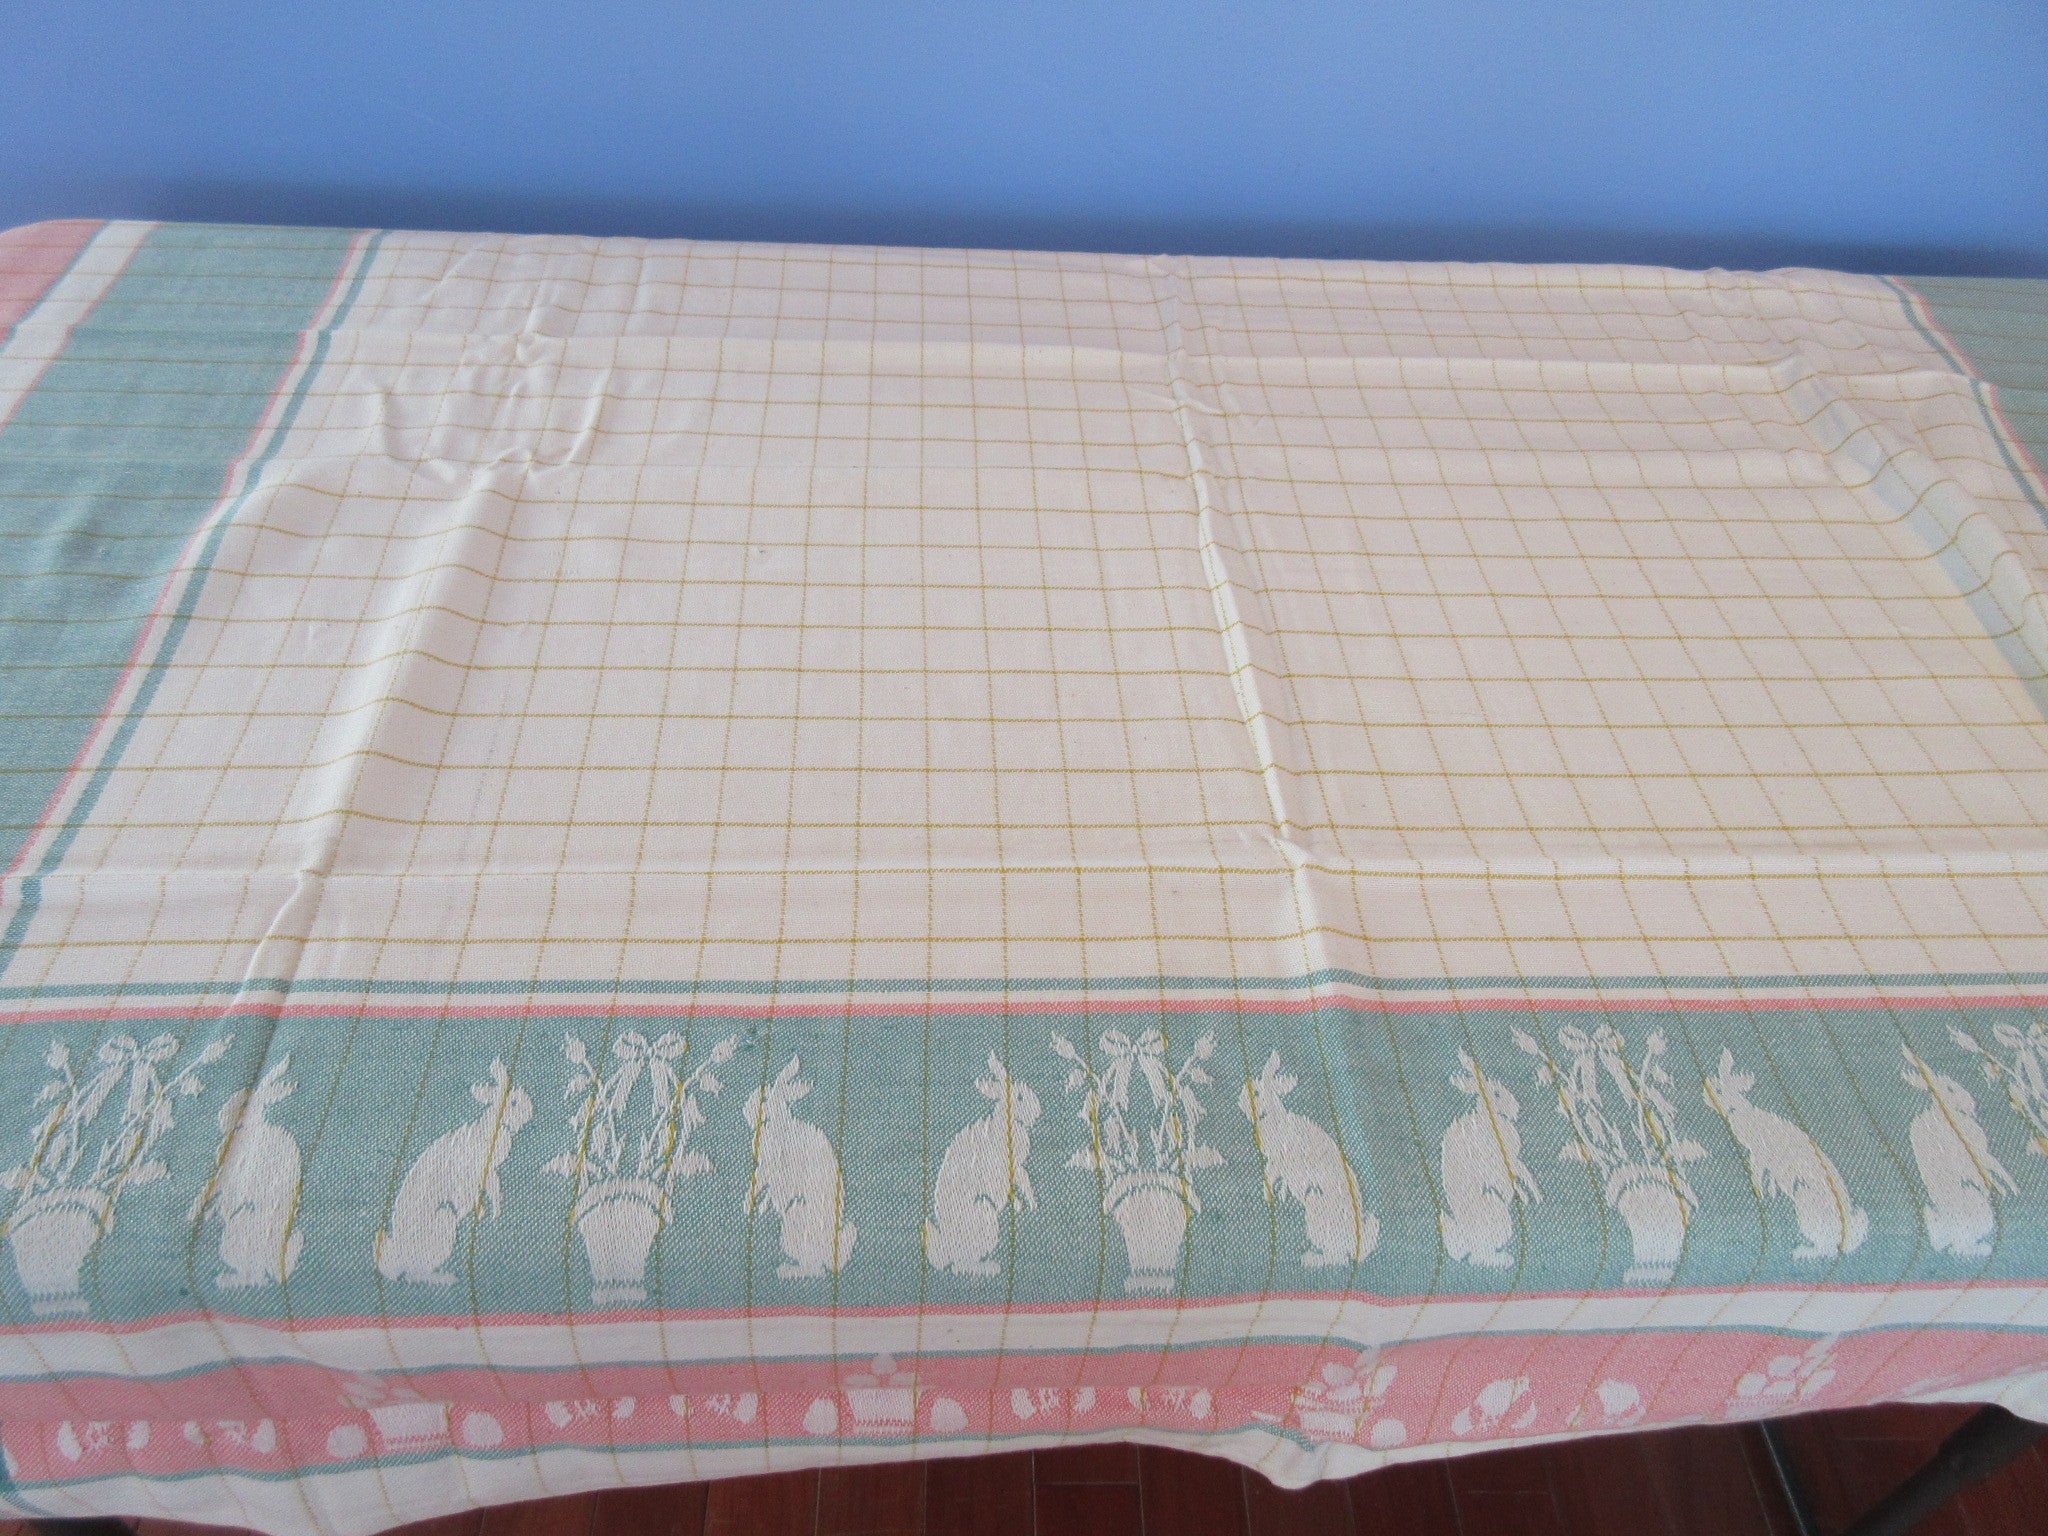 Square Easter Jacquard Plaid Green Peach Novelty Vintage Printed Tablecloth (52 X 52)